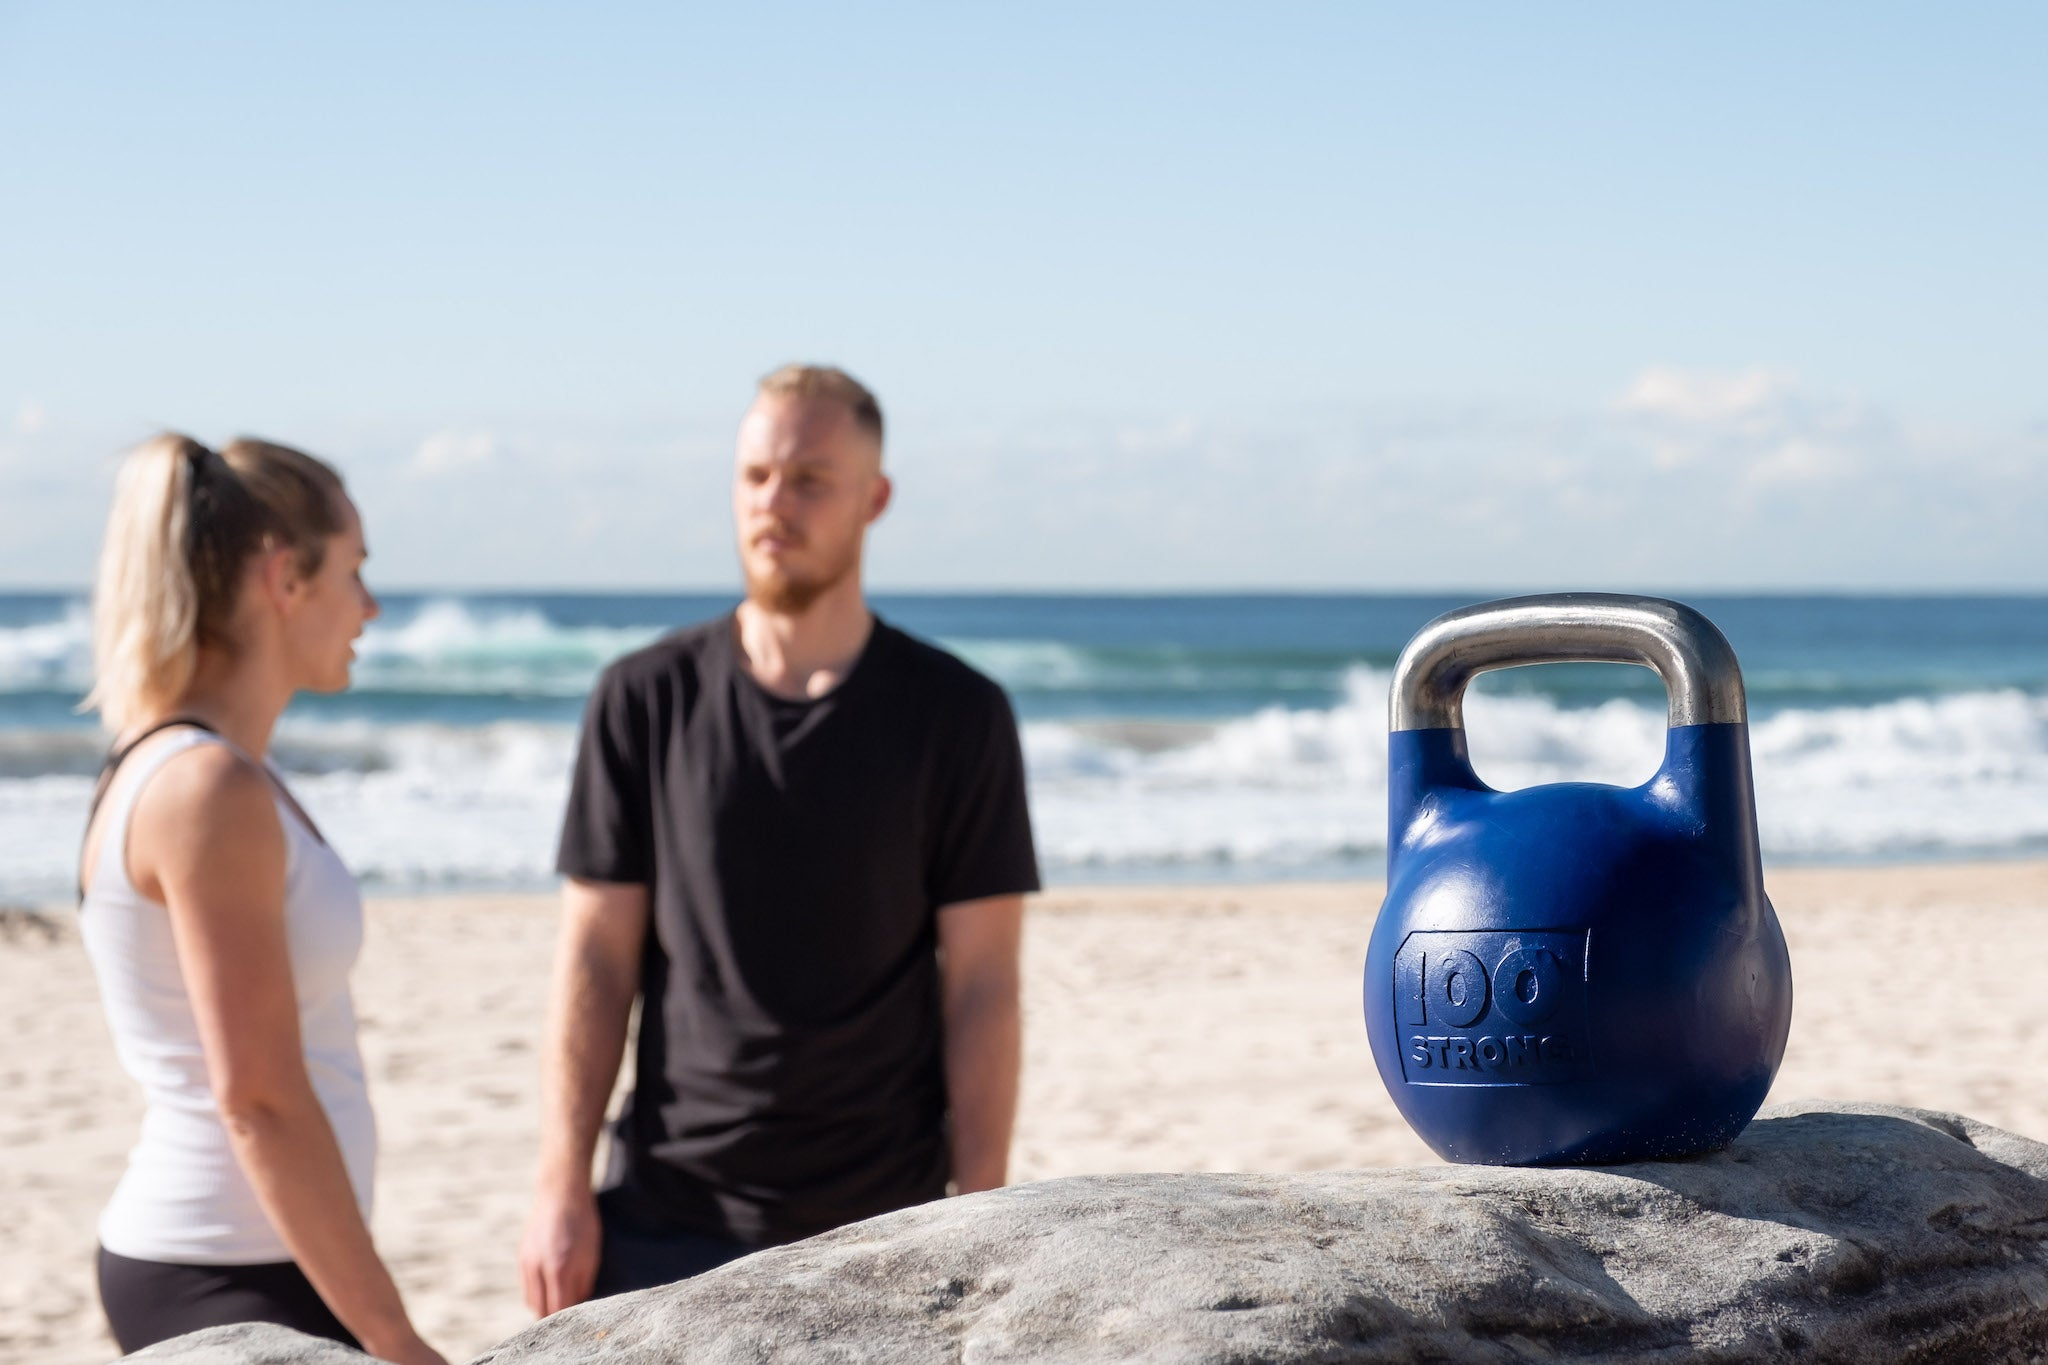 Man and woman talking at Manly Beach with blue 12kg kettlebell in foreground